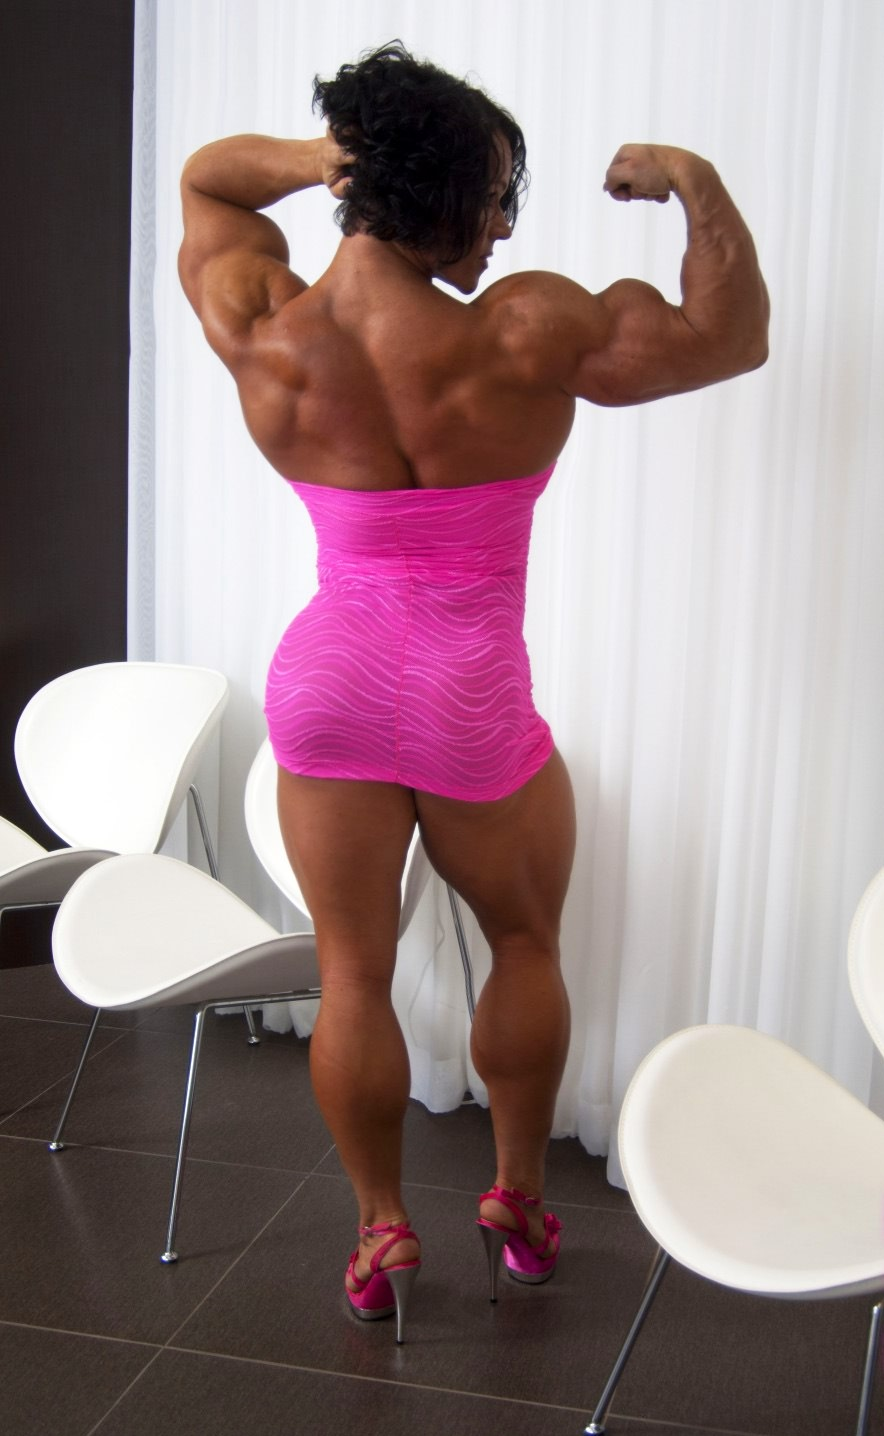 Massive Female Bodybuilder Fleing Her Truly Huge Muscles From